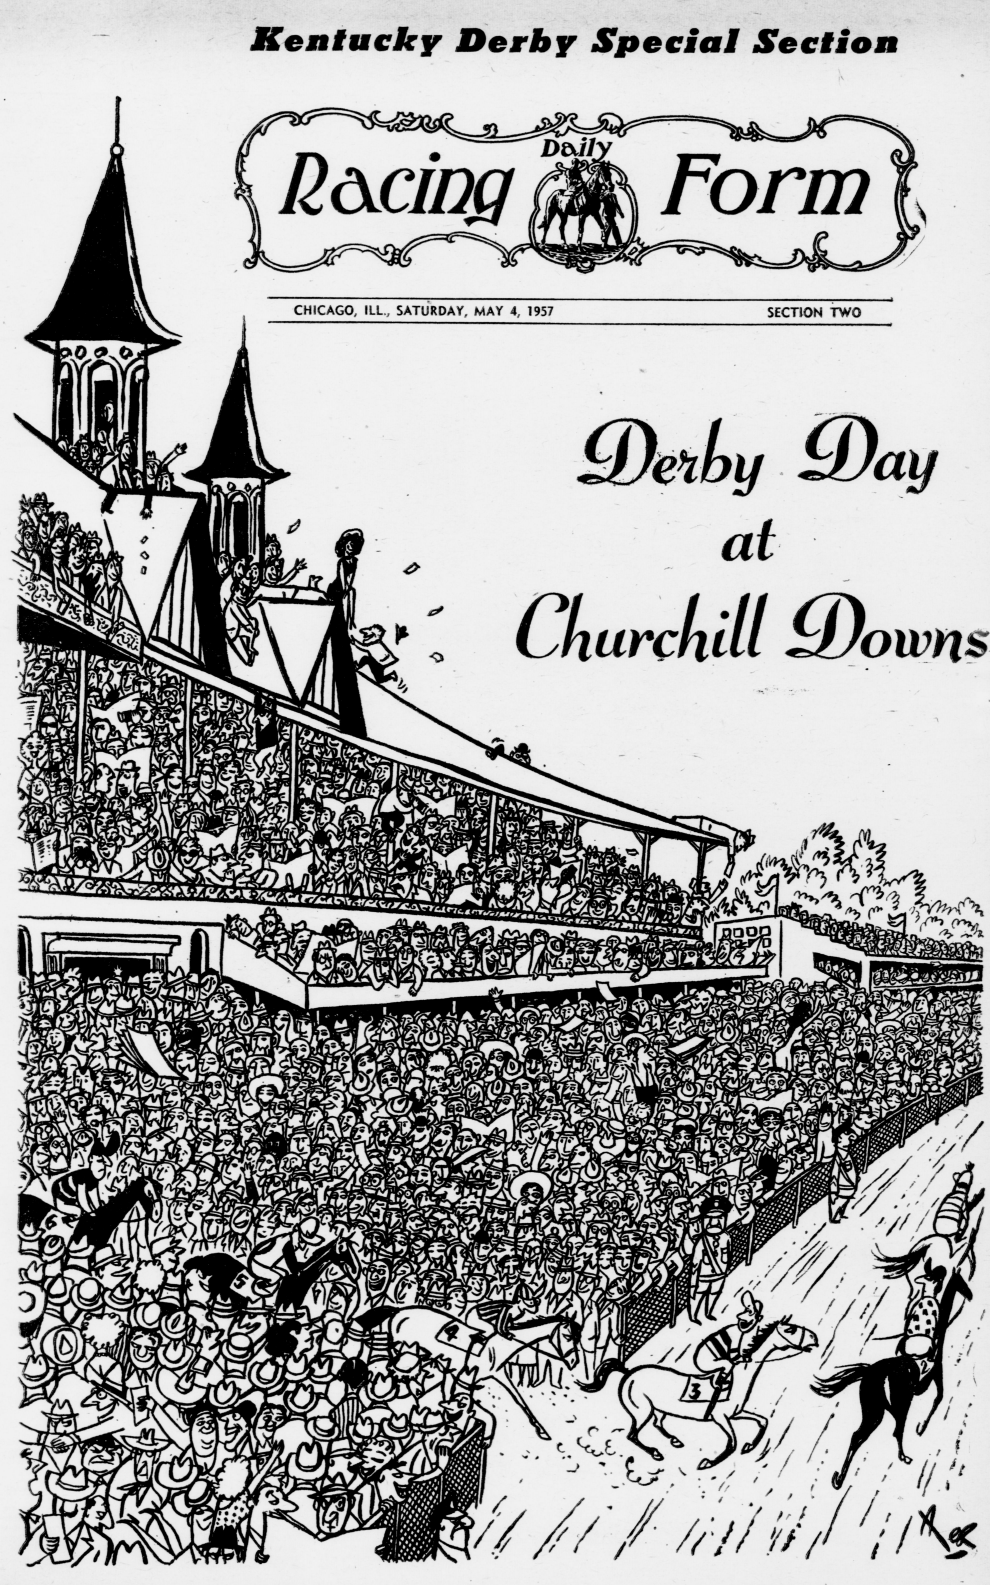 Marvelous Derby Day At Churchill Downs, Daily Racing Form, 1957 05 04